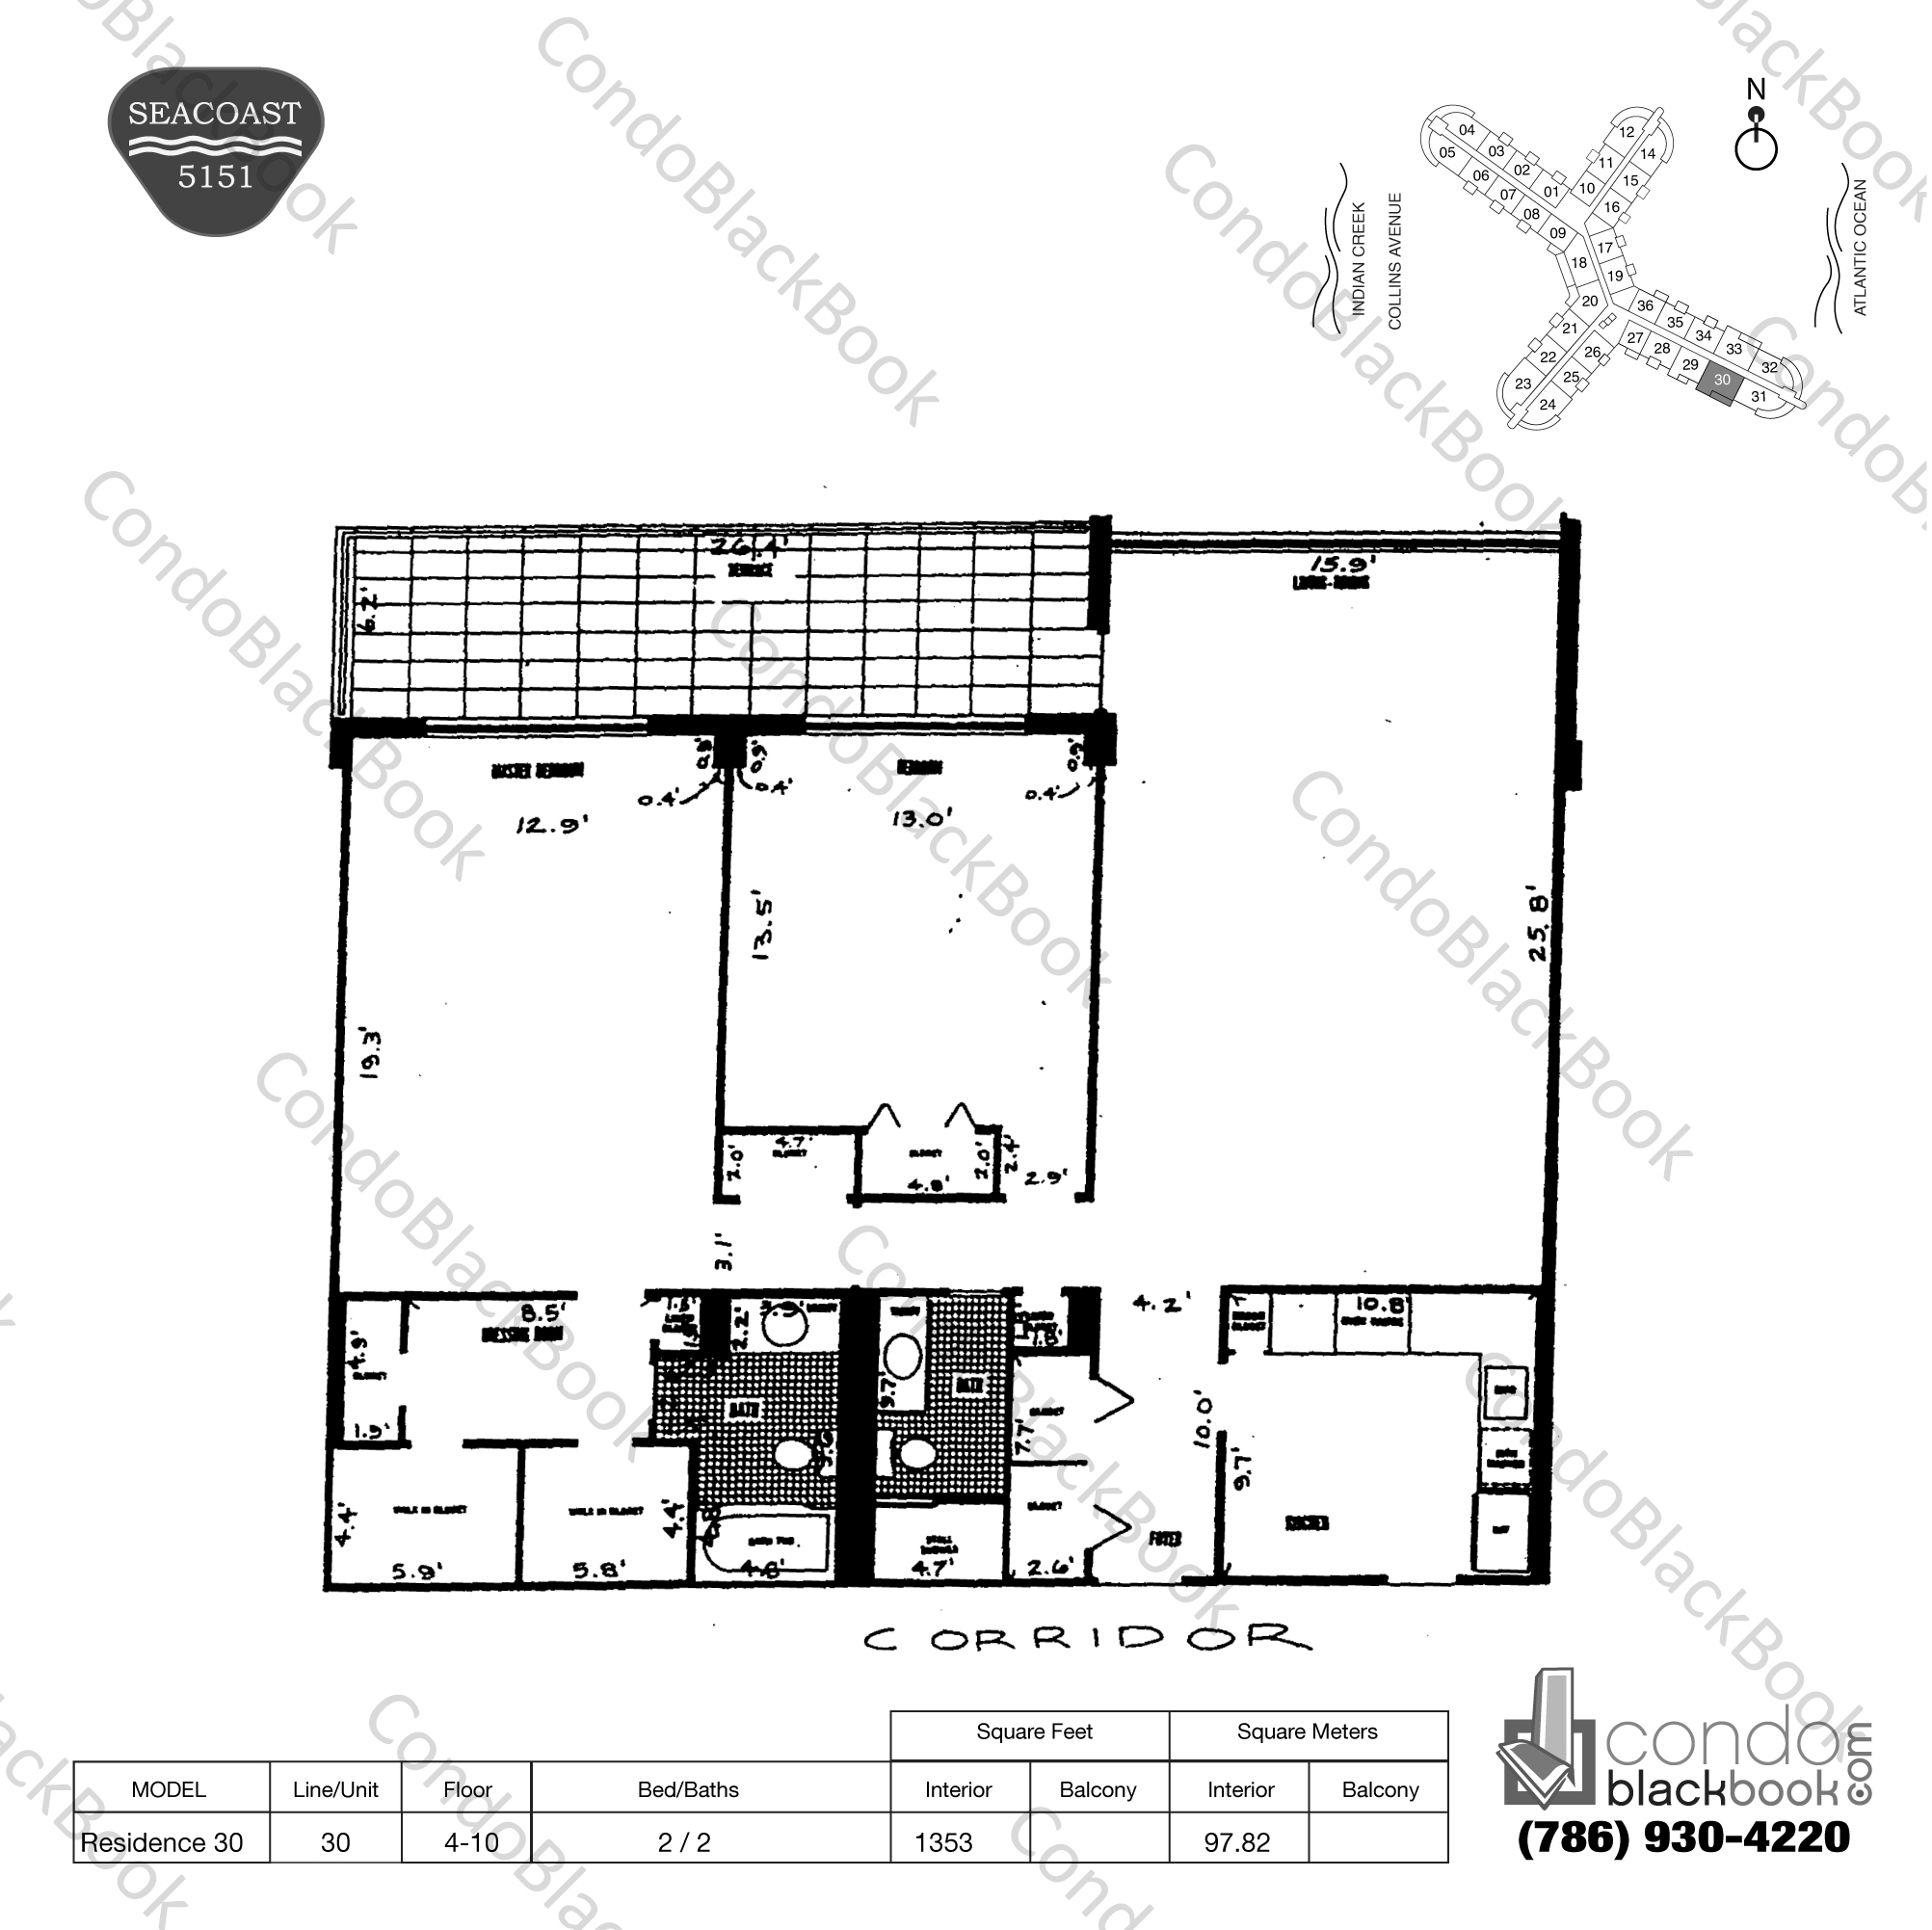 Floor plan for Seacoast 5151 Mid-Beach Miami Beach, model Residence 30, line 30, 2 / 2 bedrooms, 1353 sq ft